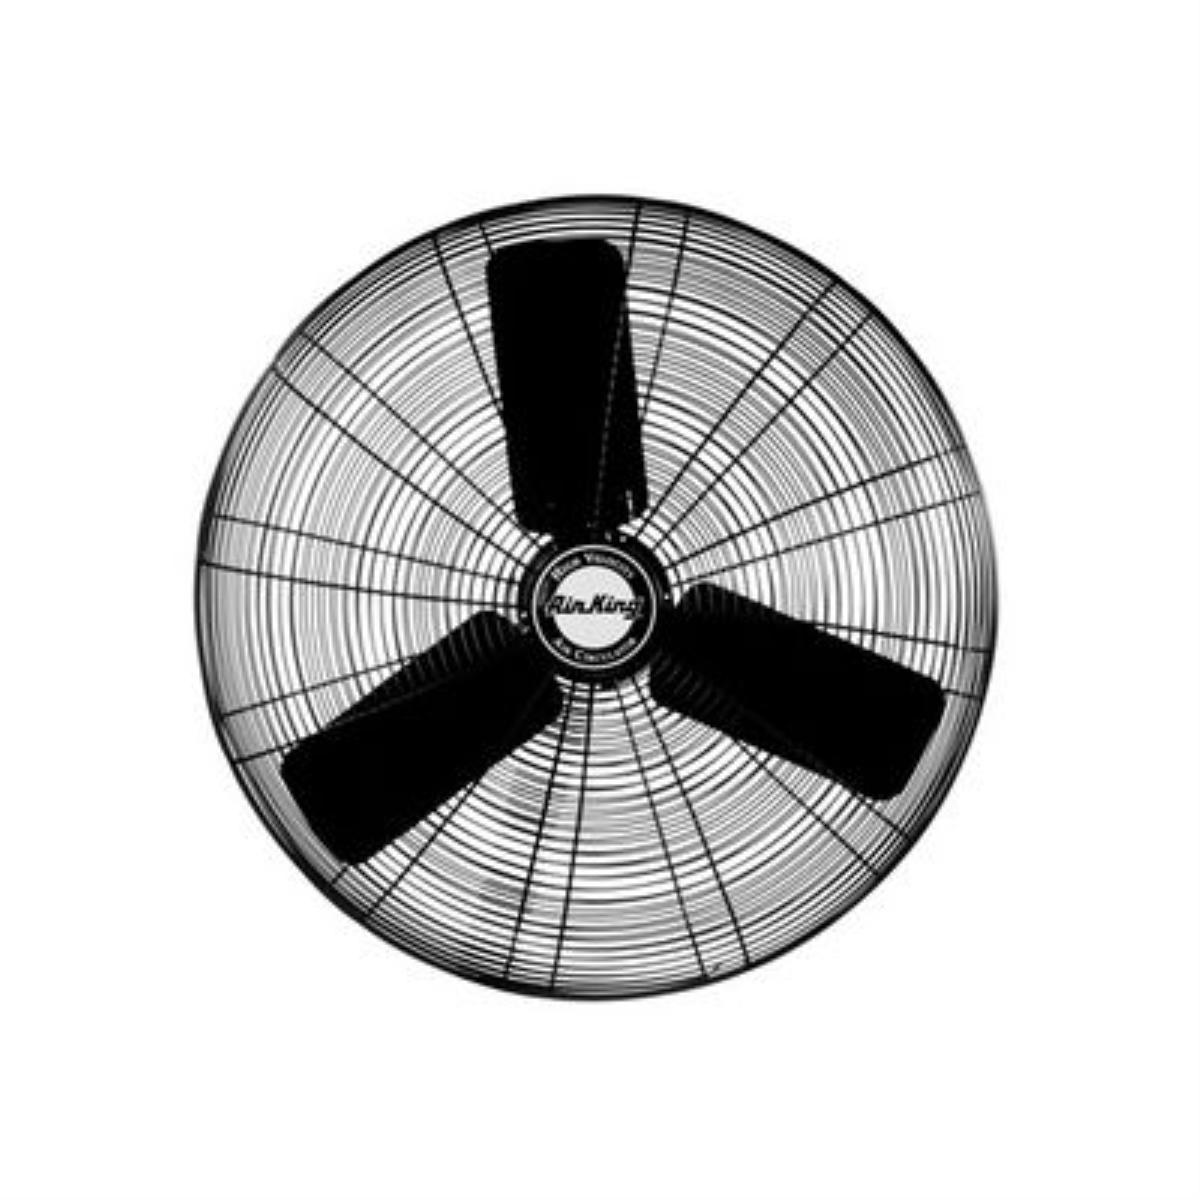 Air King 9124H 24 inch Fan Head Assembly